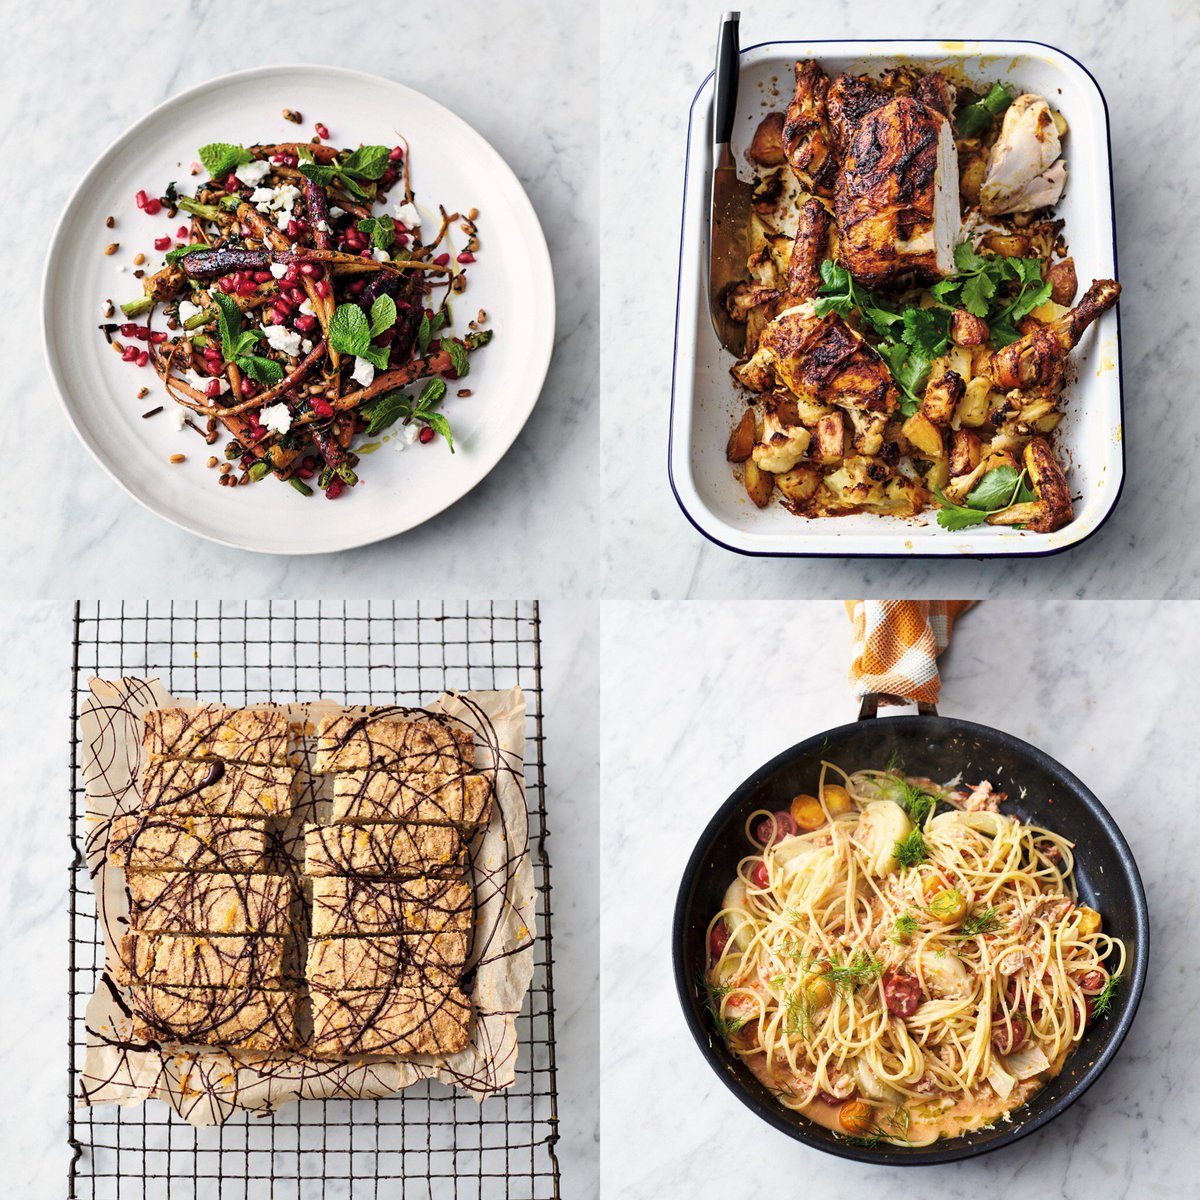 Catch up on #QuickAndEasyFood in 25 minutes on @4seven at 4:25am... see you there! ???? https://t.co/RtH7WlXEbu